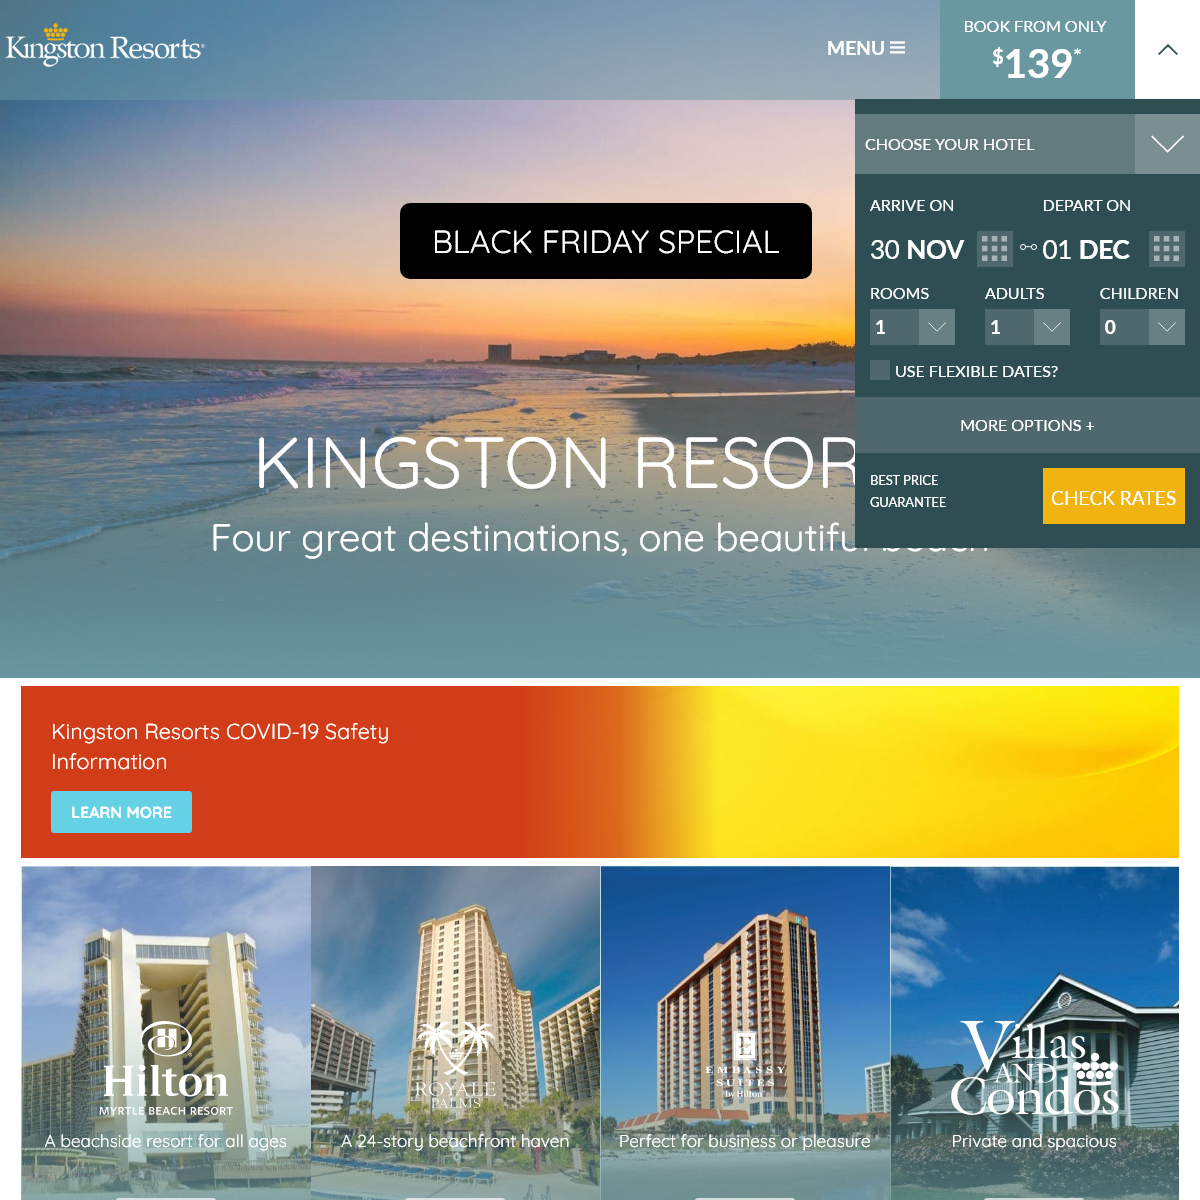 Kingston Resorts in Myrtle Beach - Two Great Resorts, One Unforgettable Location